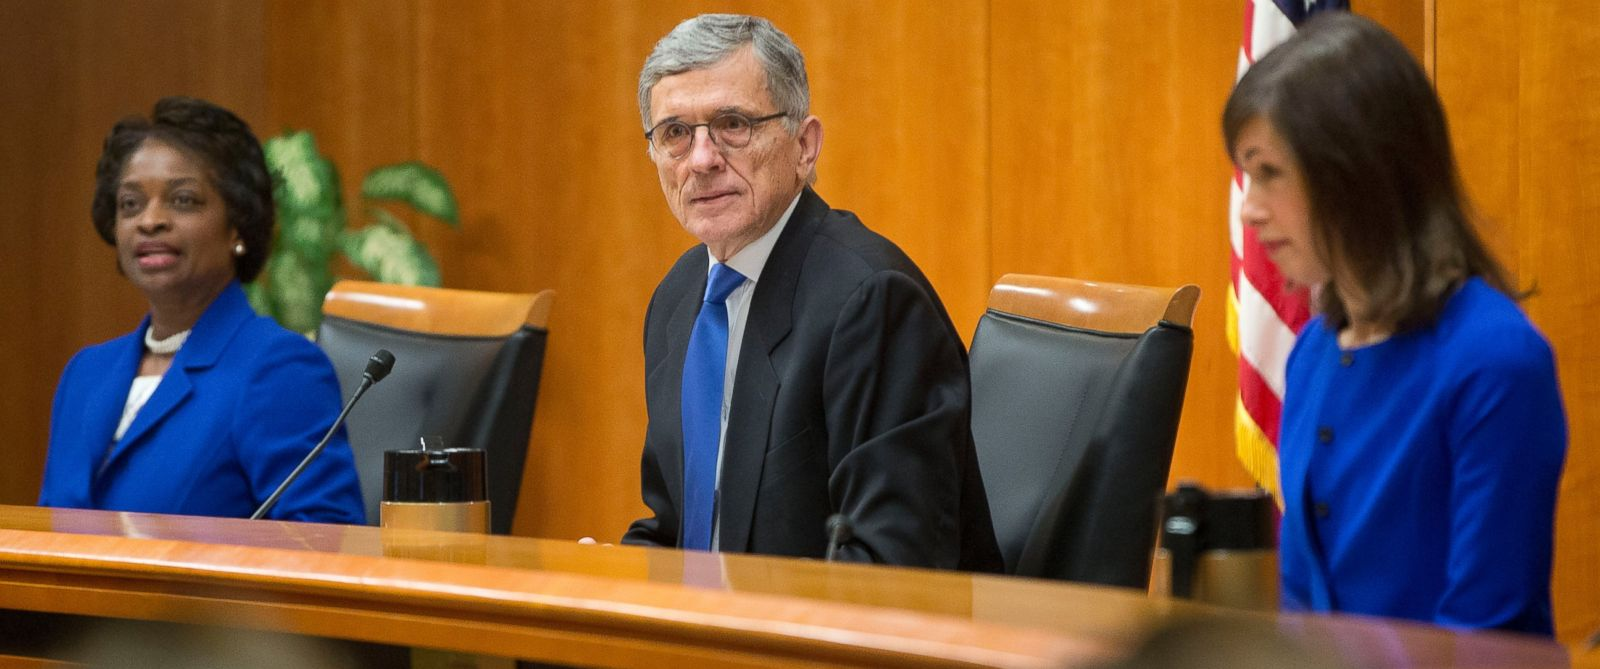 PHOTO: Federal Communication Commission (FCC) Chairman Tom Wheeler, center, with FCC Commissioners Mignon Clyburn, left, and Jessica Rosenworcel, before the start of their open hearing in Washington, Feb. 26, 2015.